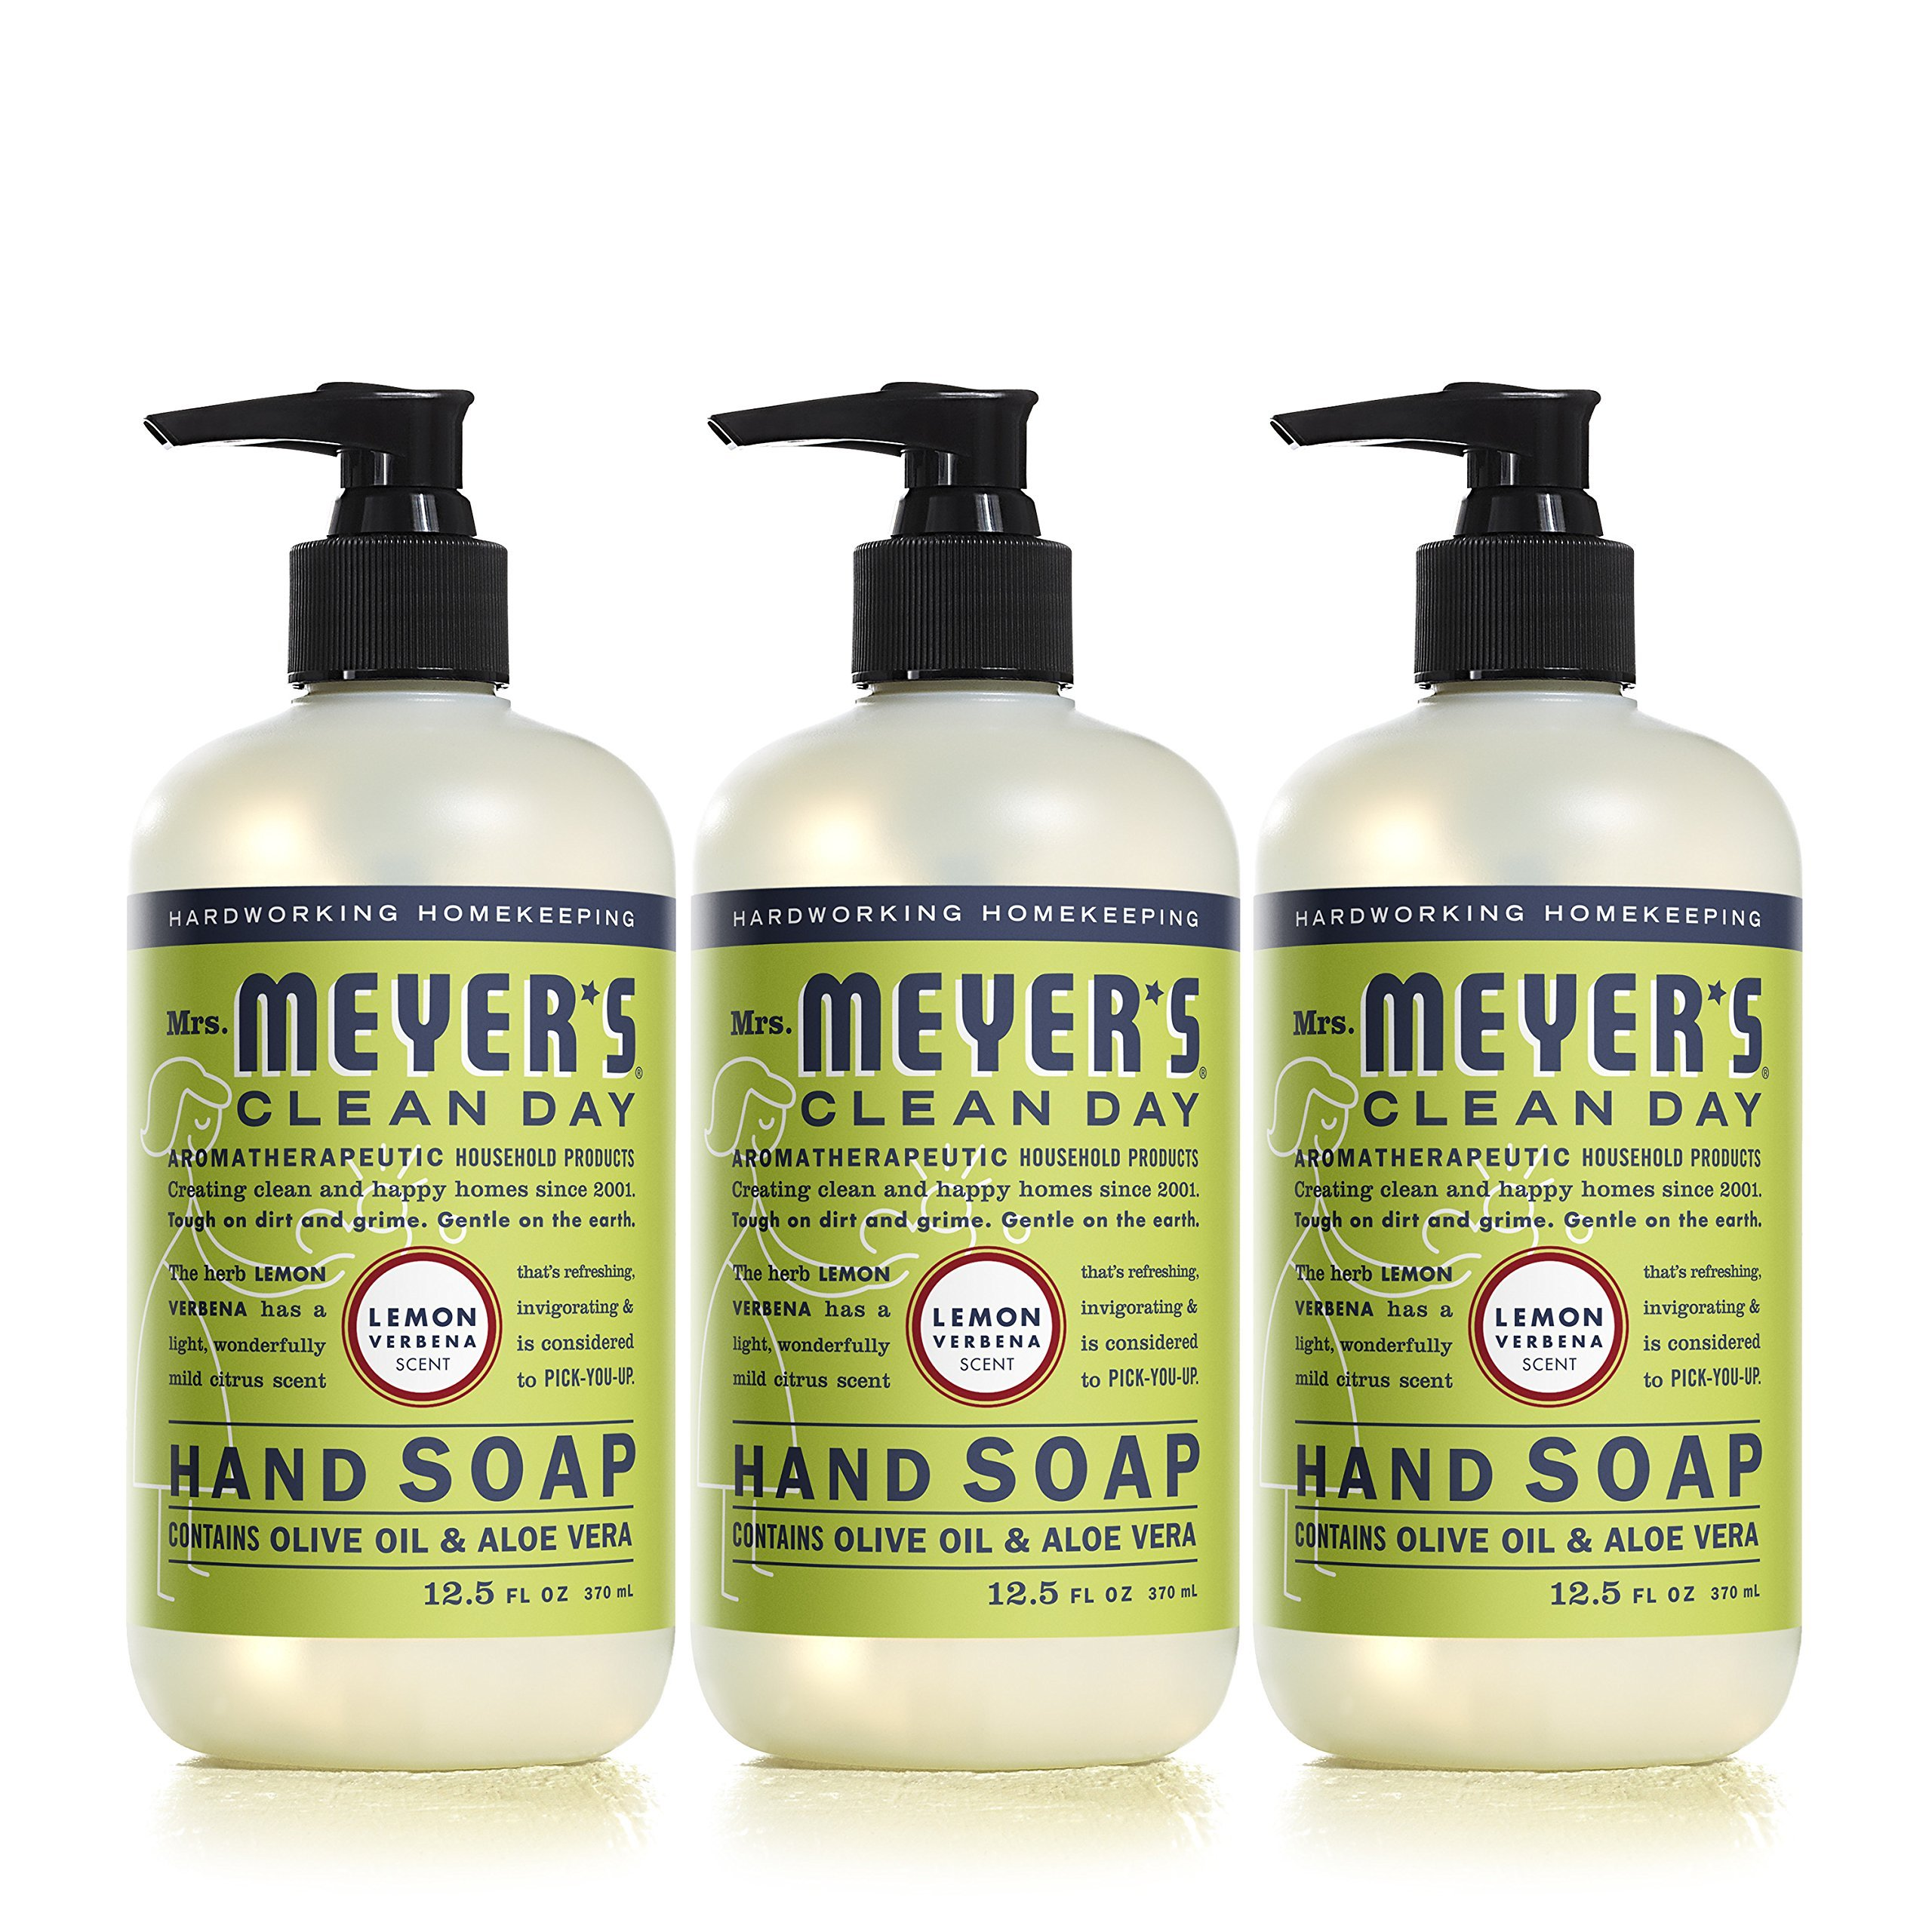 Mrs. Meyers Clean Day Hand Soap Lemon Verbena 12.5 fl oz